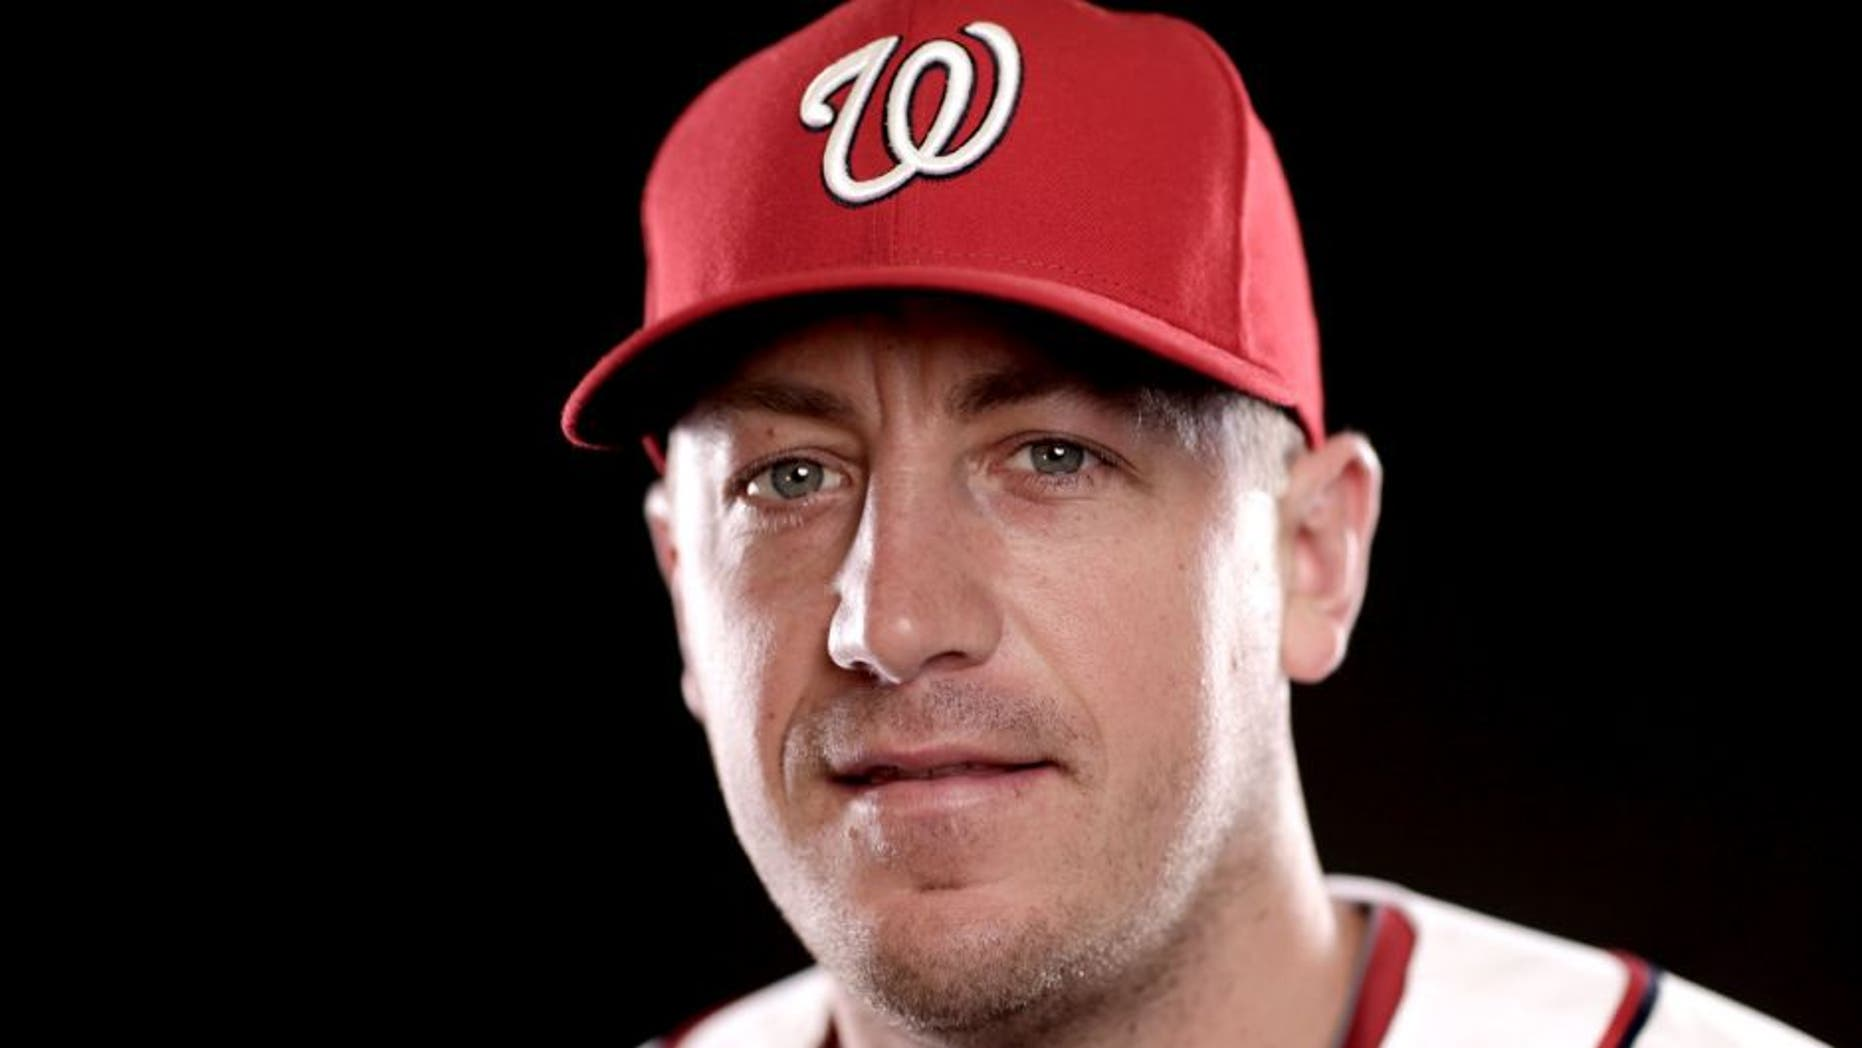 VIERA, FL - MARCH 01: Jordan Zimmermann #27 of the Washington Nationals poses for a portrait during photo day at Space Coast Stadium on March 1, 2015 in Viera, Florida. (Photo by Chris Trotman/Getty Images)